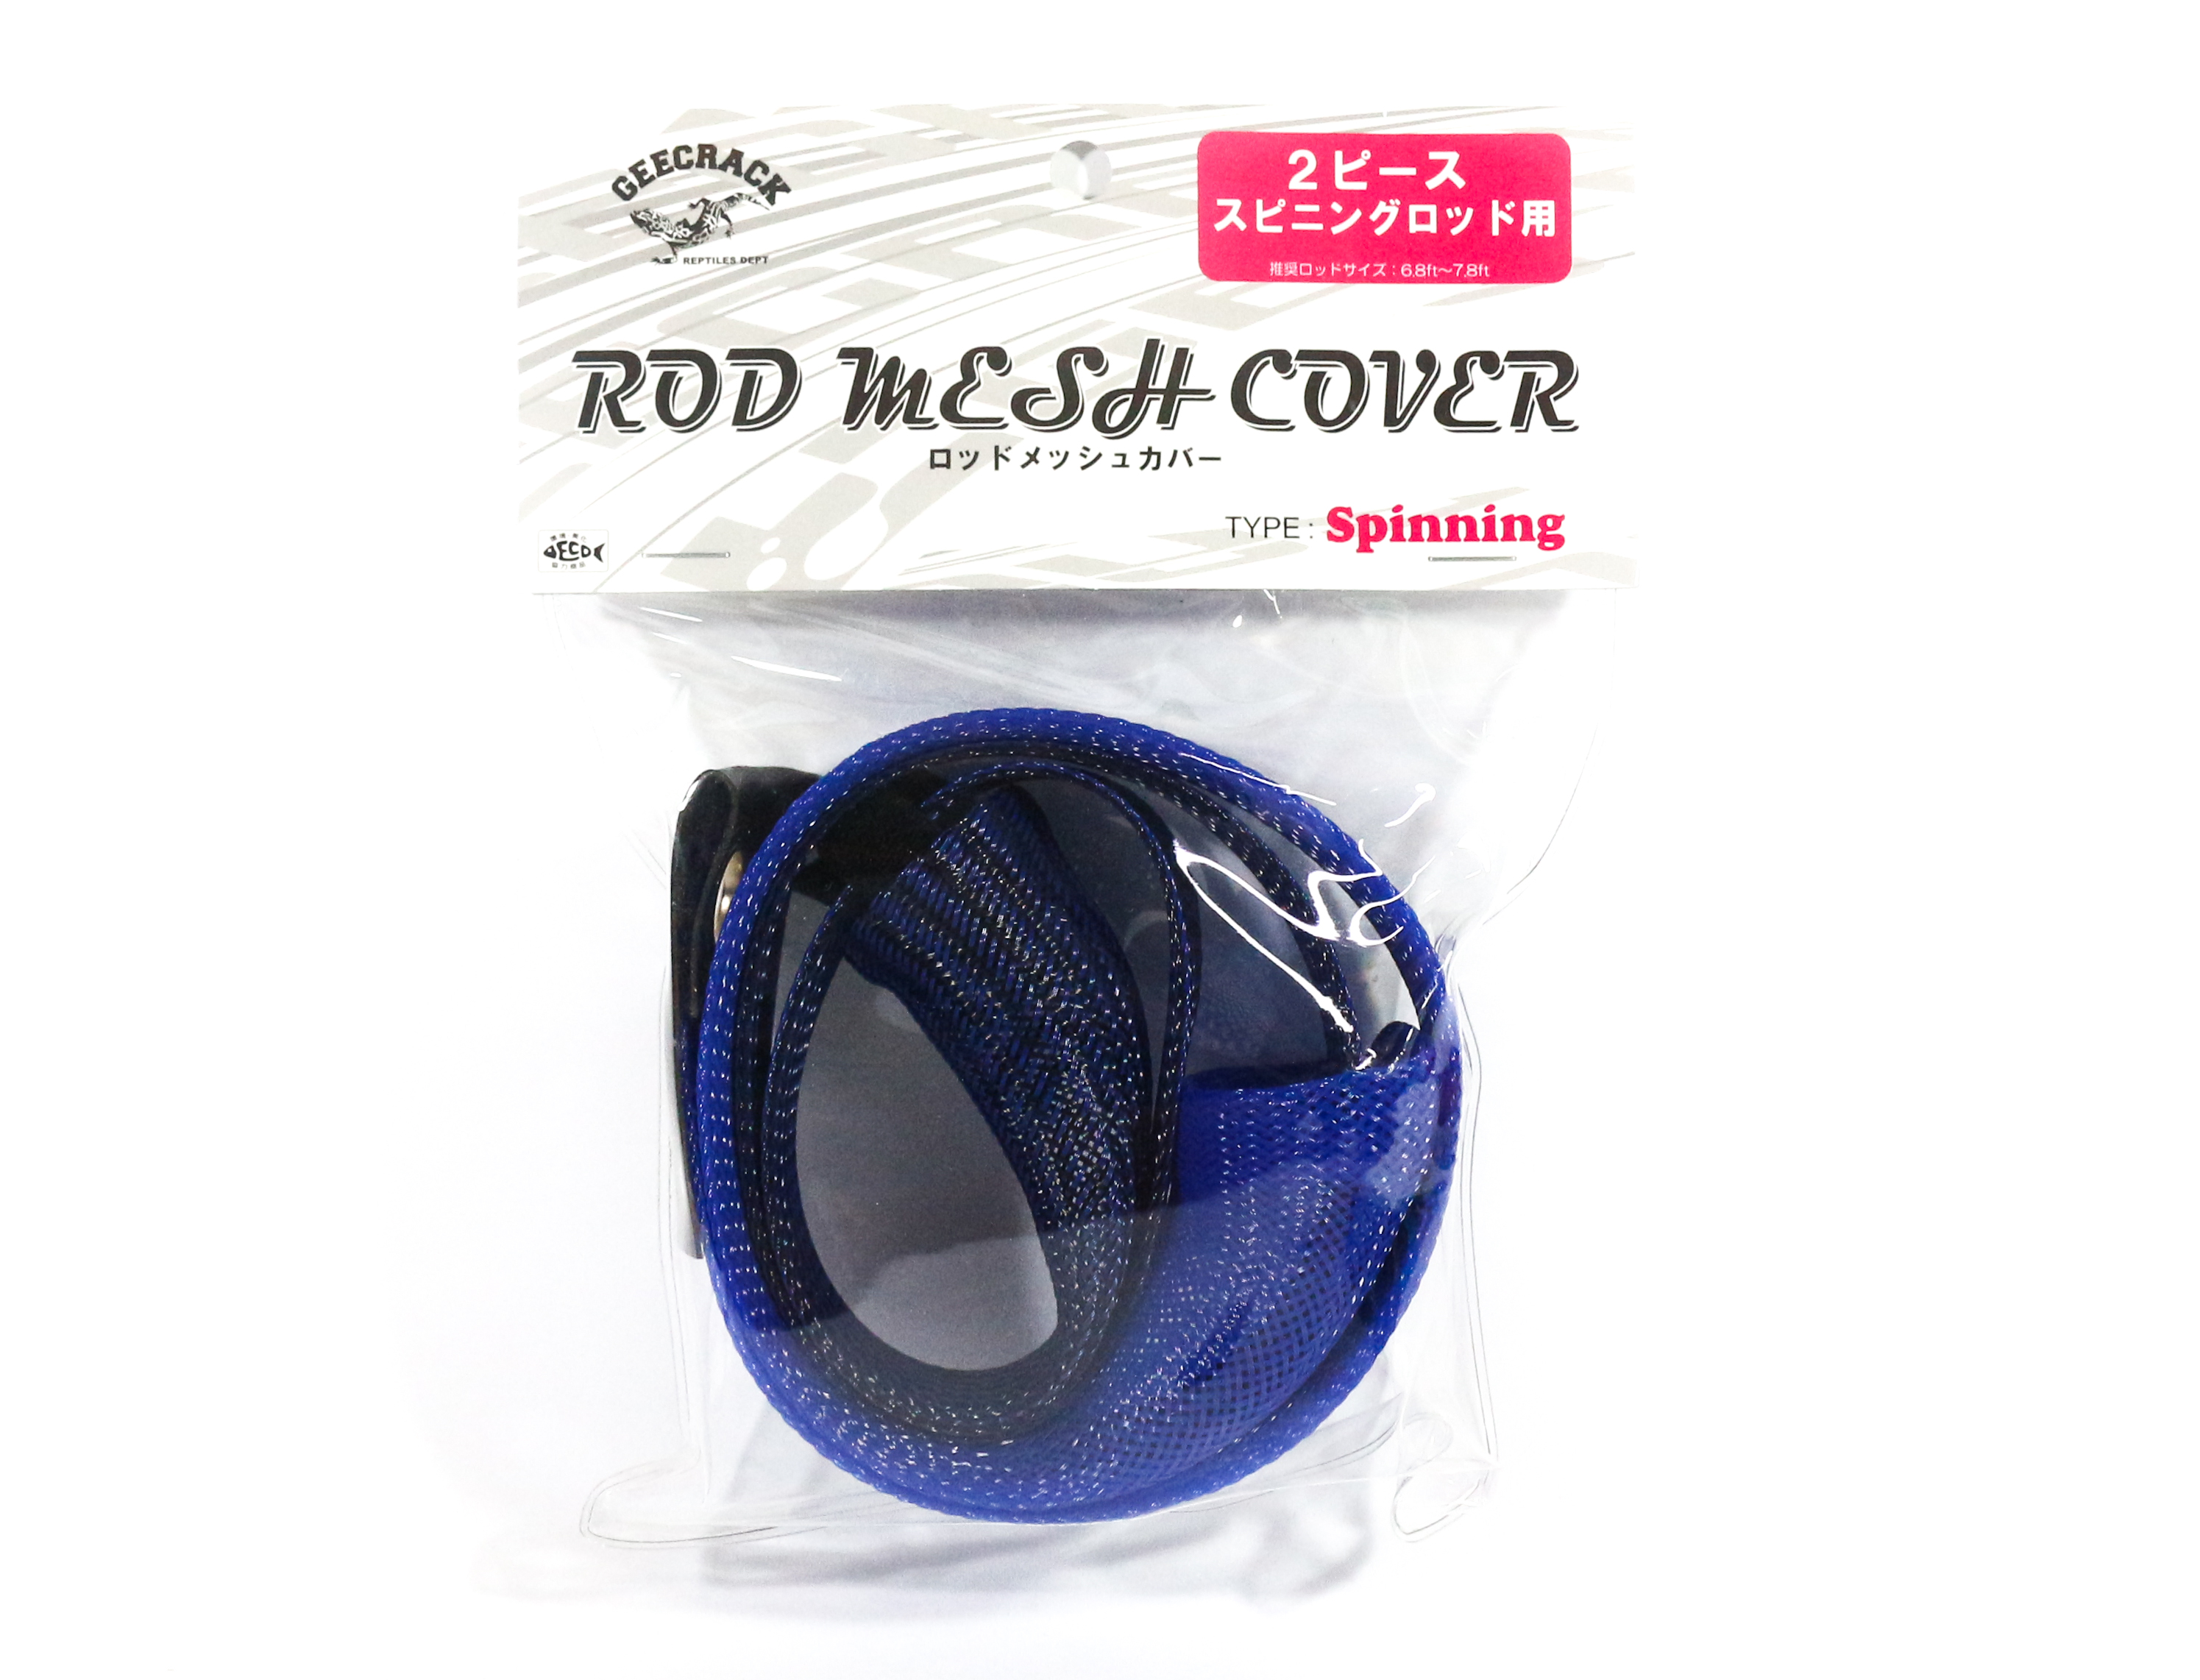 Sale Gee Crack GEE 7172 Rod Mesh Cover Spin 2 Pc 110x60 ,40 cm Blue (5223)